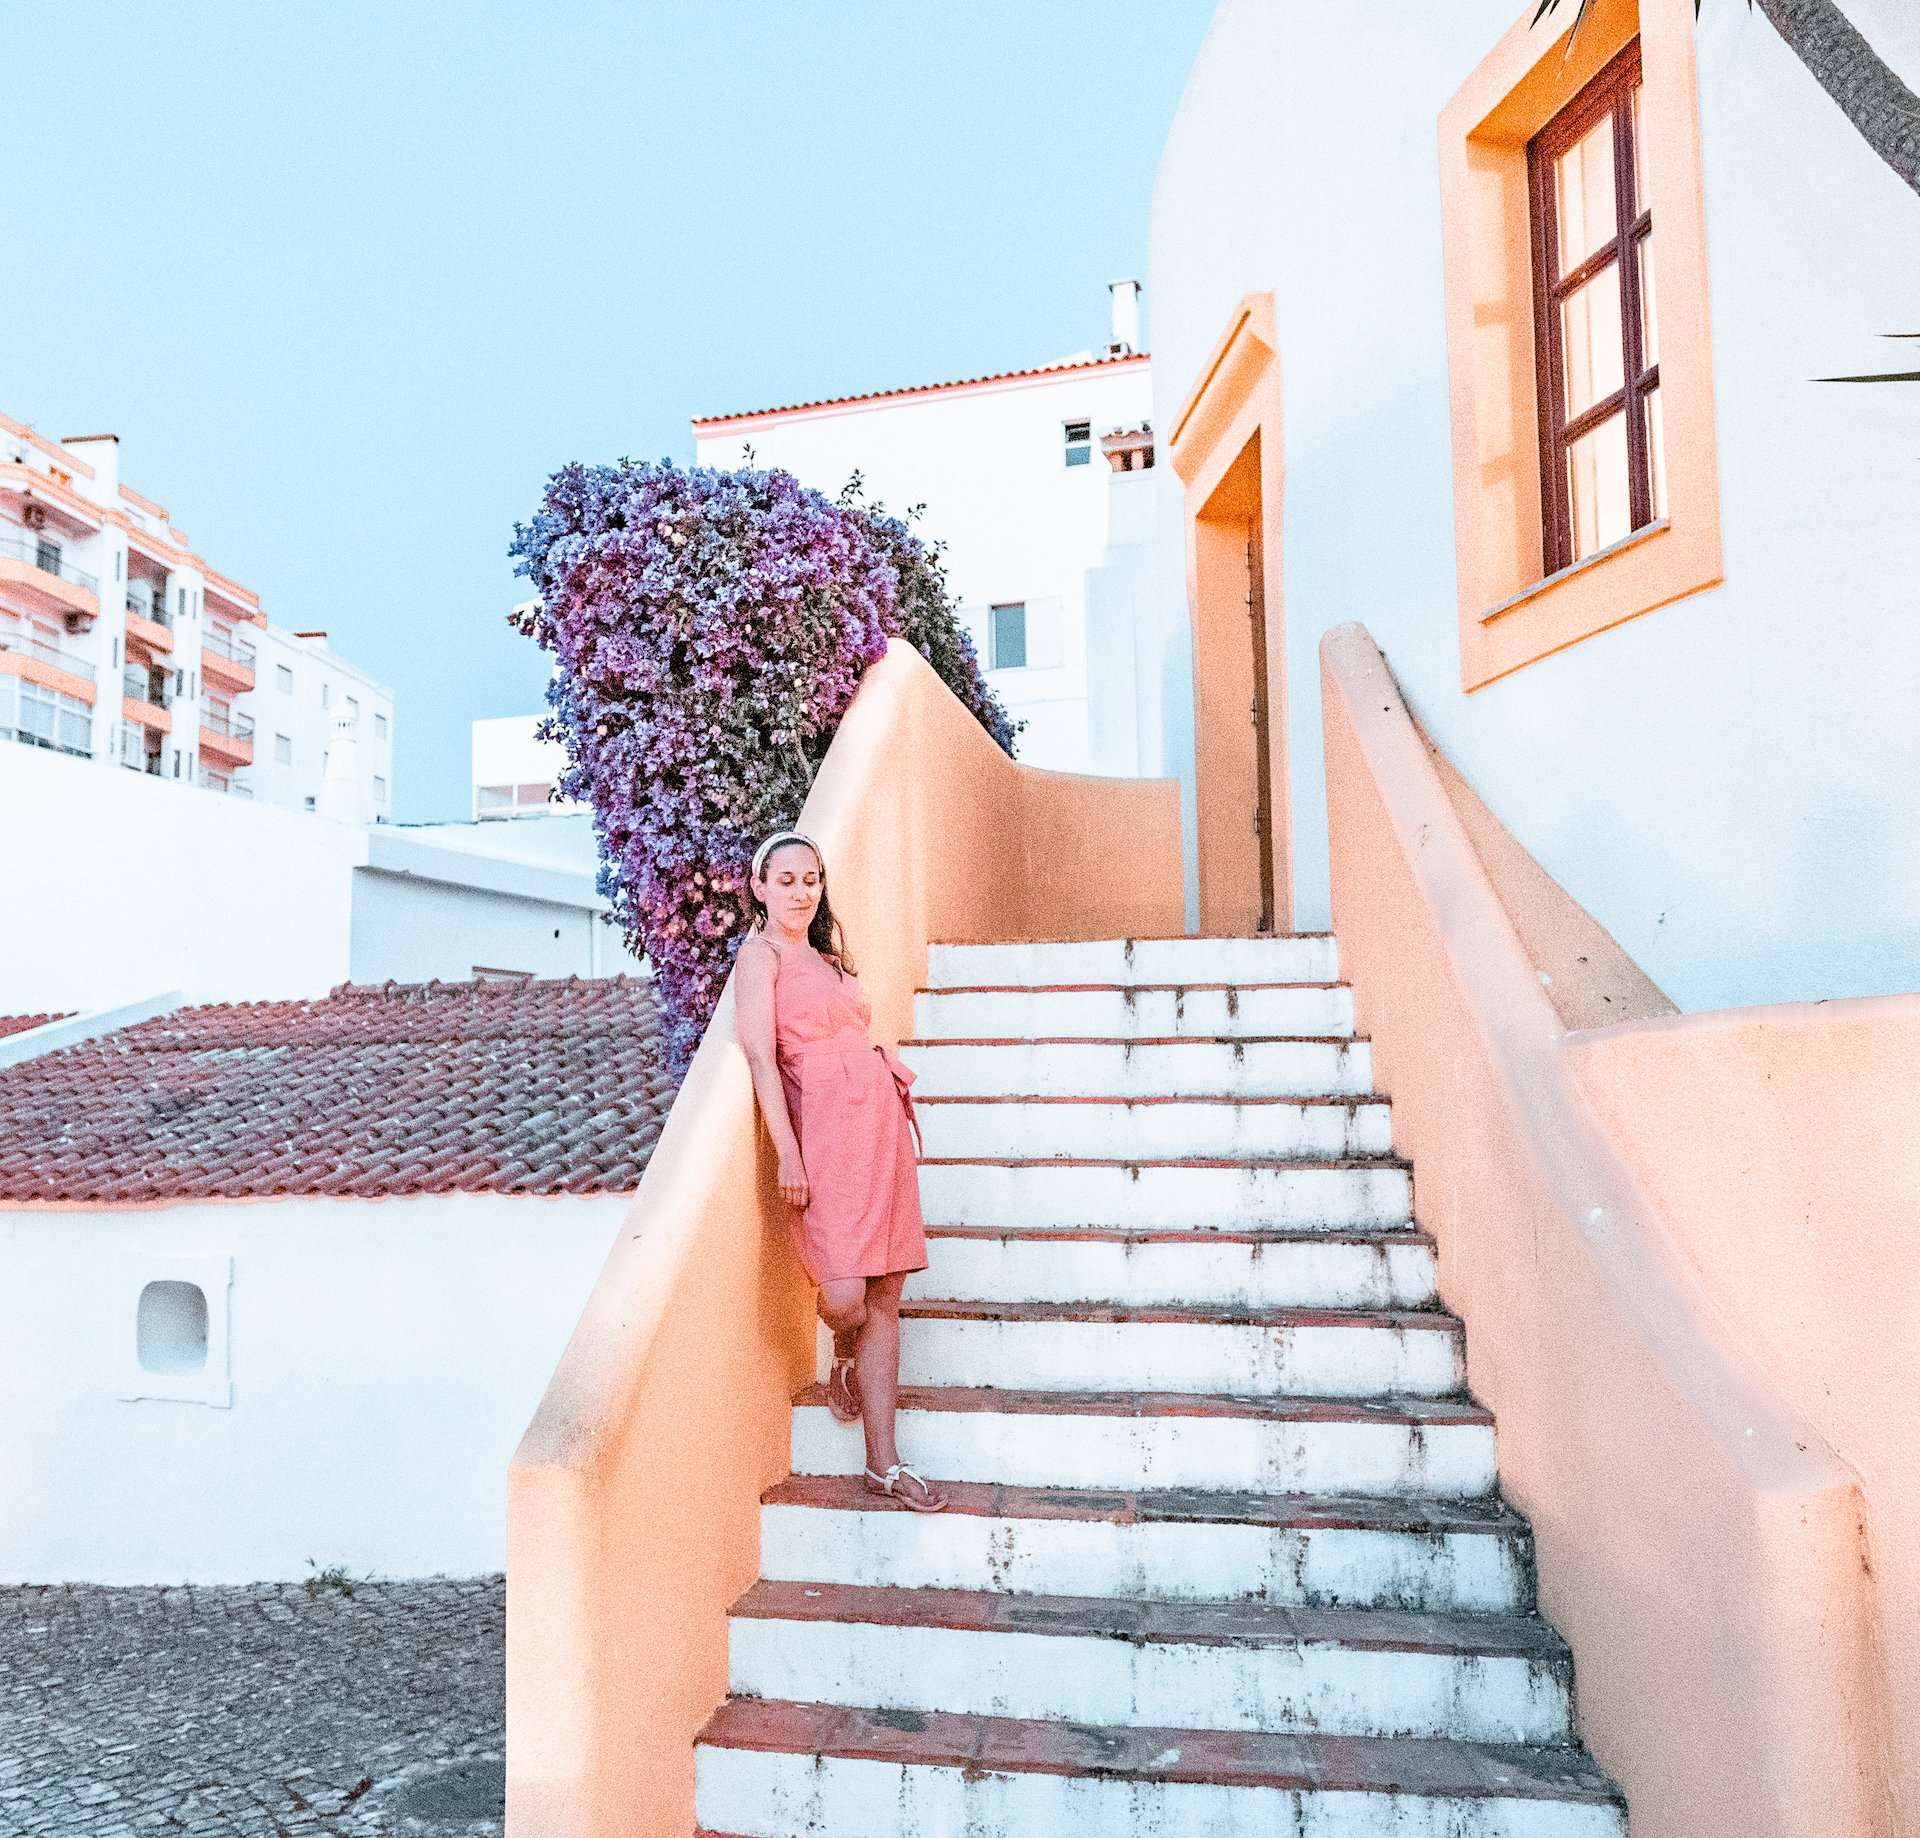 standing on a yellow staircase in Lagos, Portugal